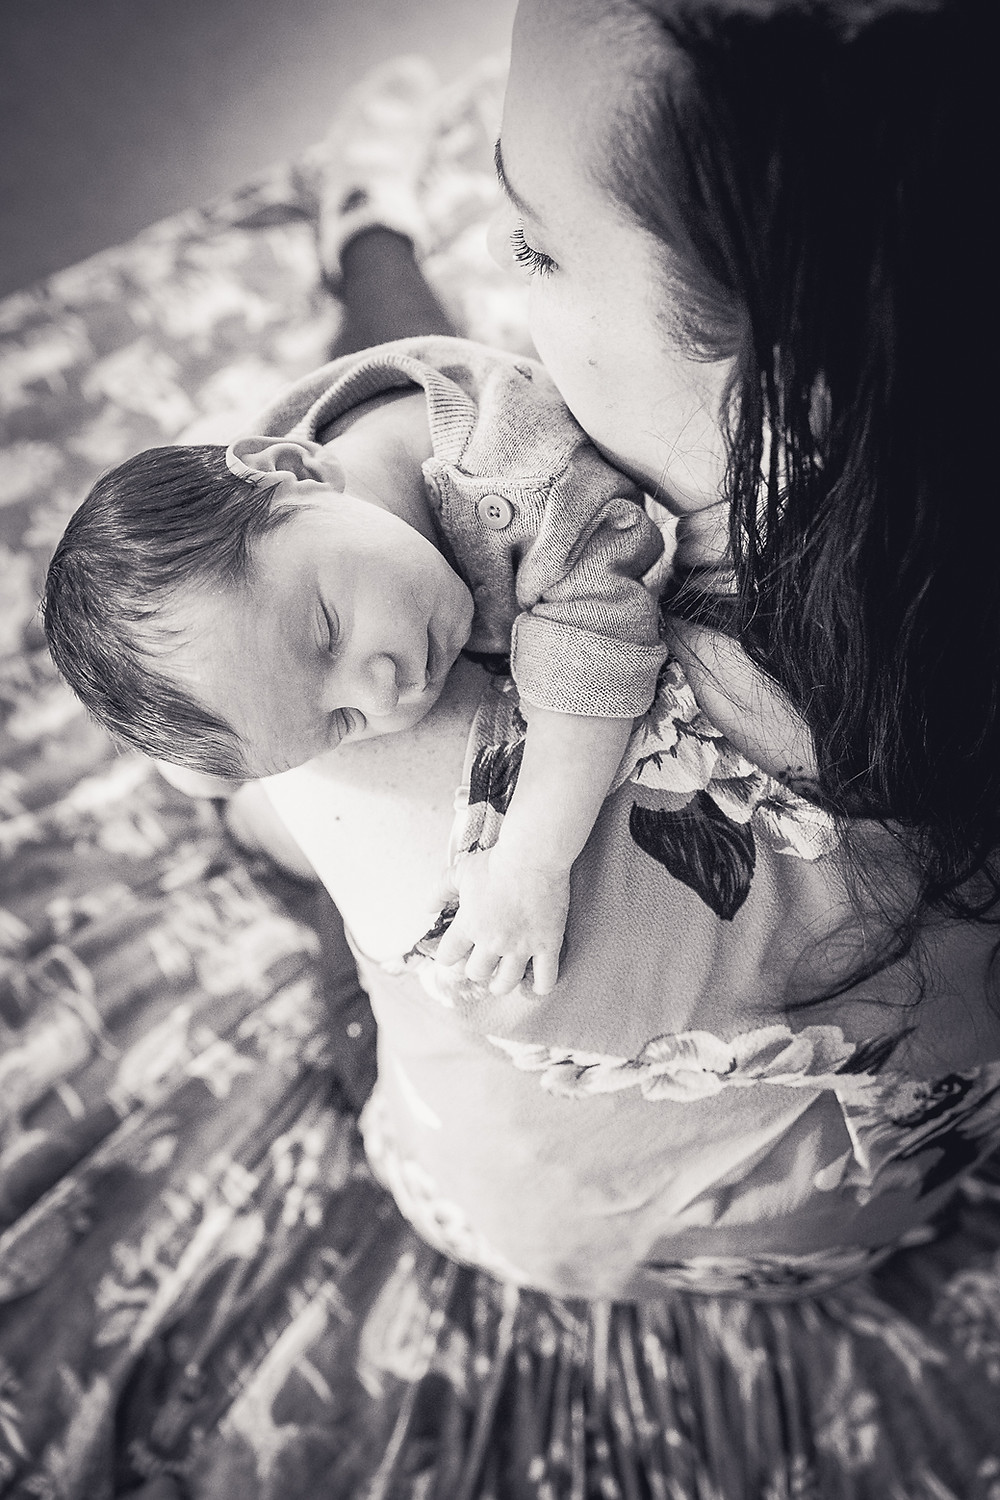 A back and white photography of a women holding her baby over her shoulder, the baby is asleep